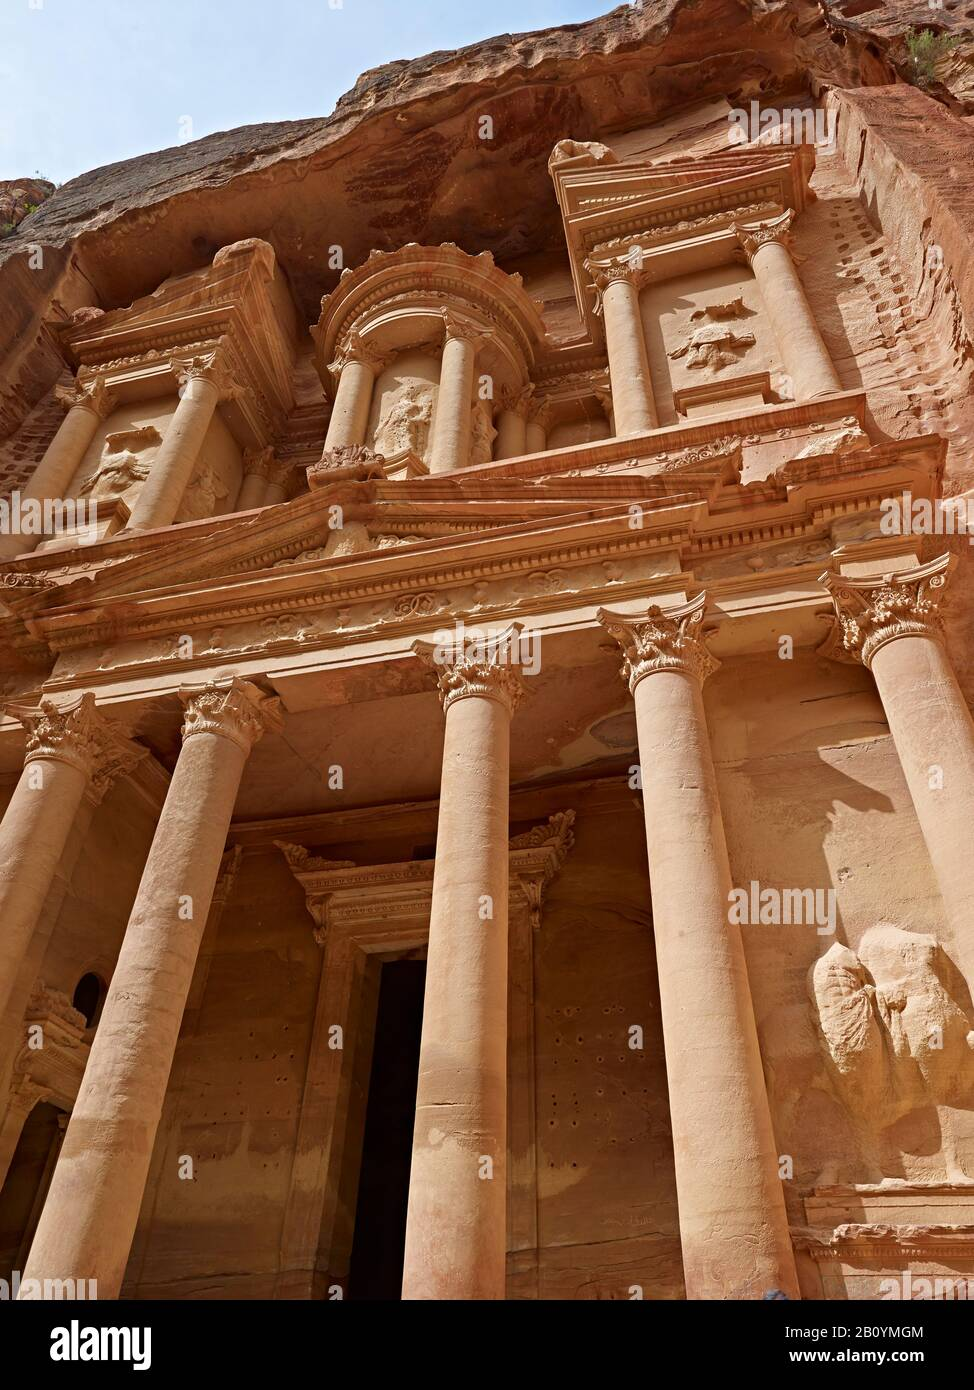 The Treasury or the Khazne in the rock city of Petra, Jordan, Middle East, Stock Photo